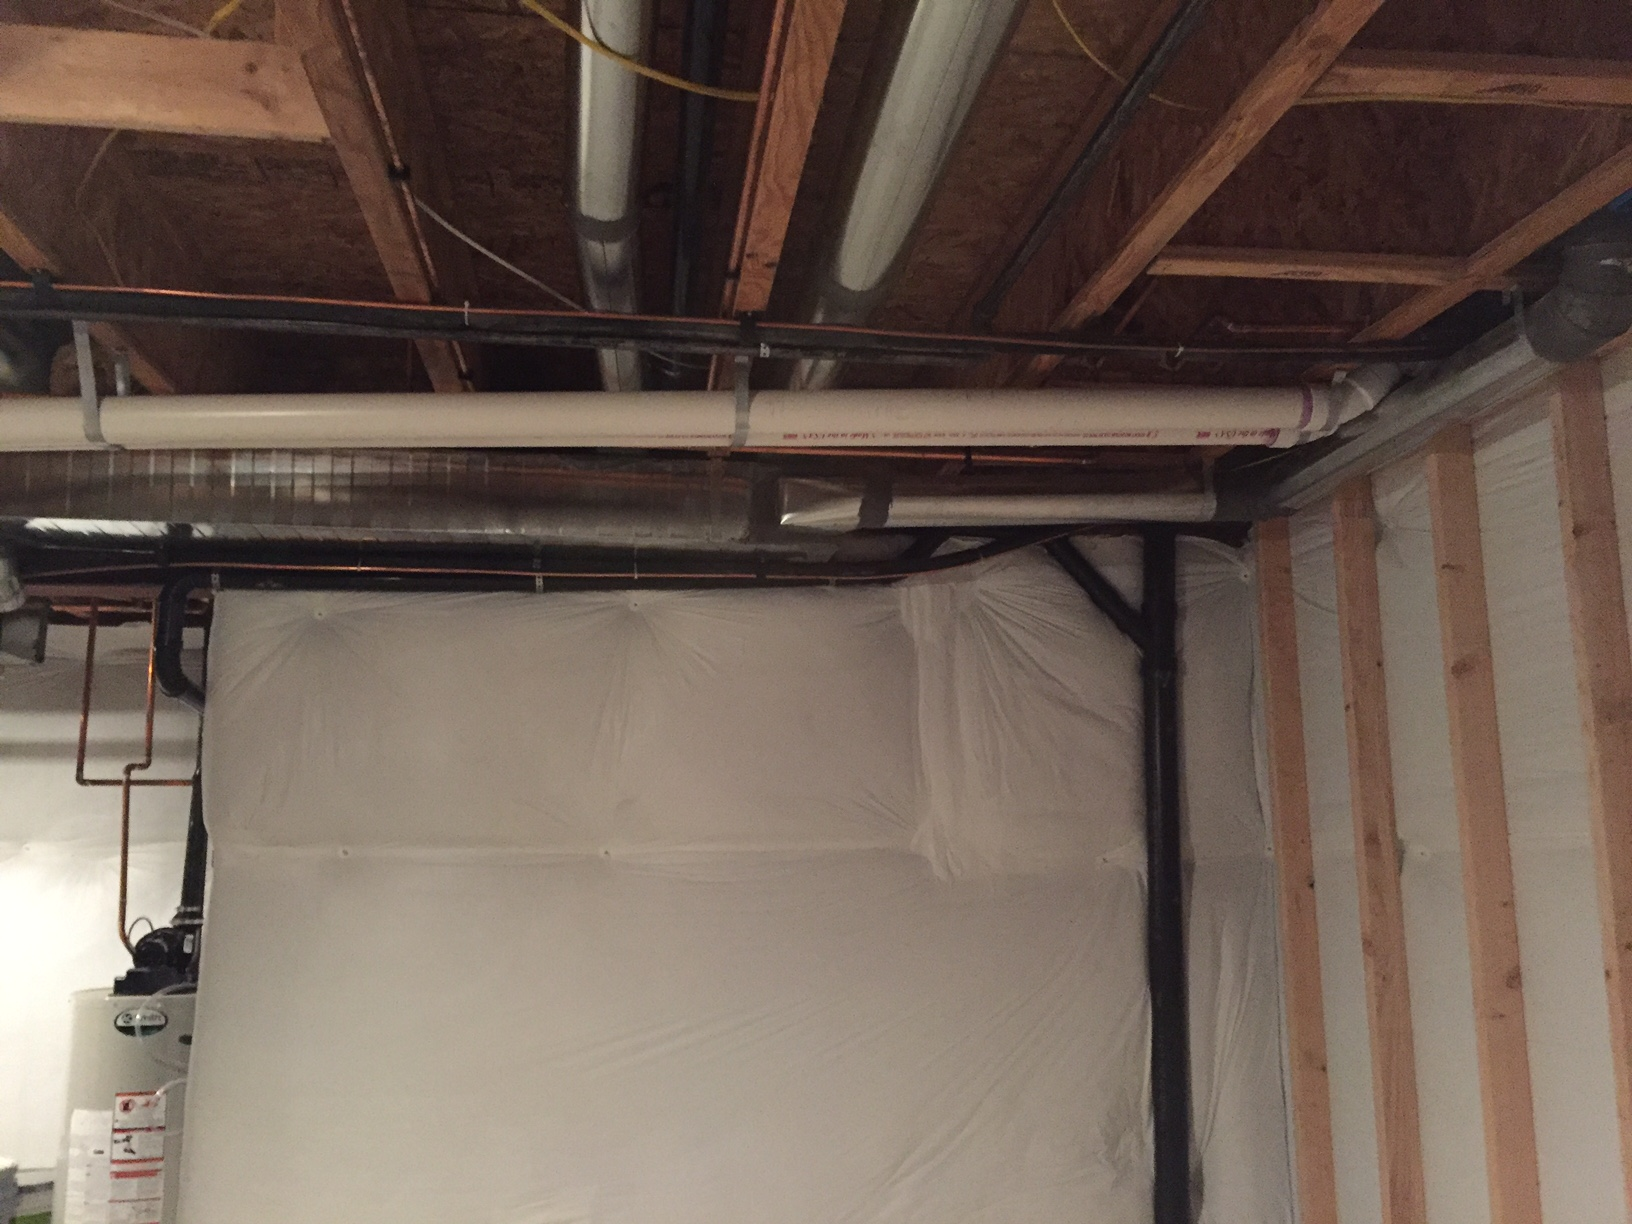 Forums for How to build floating walls in basement